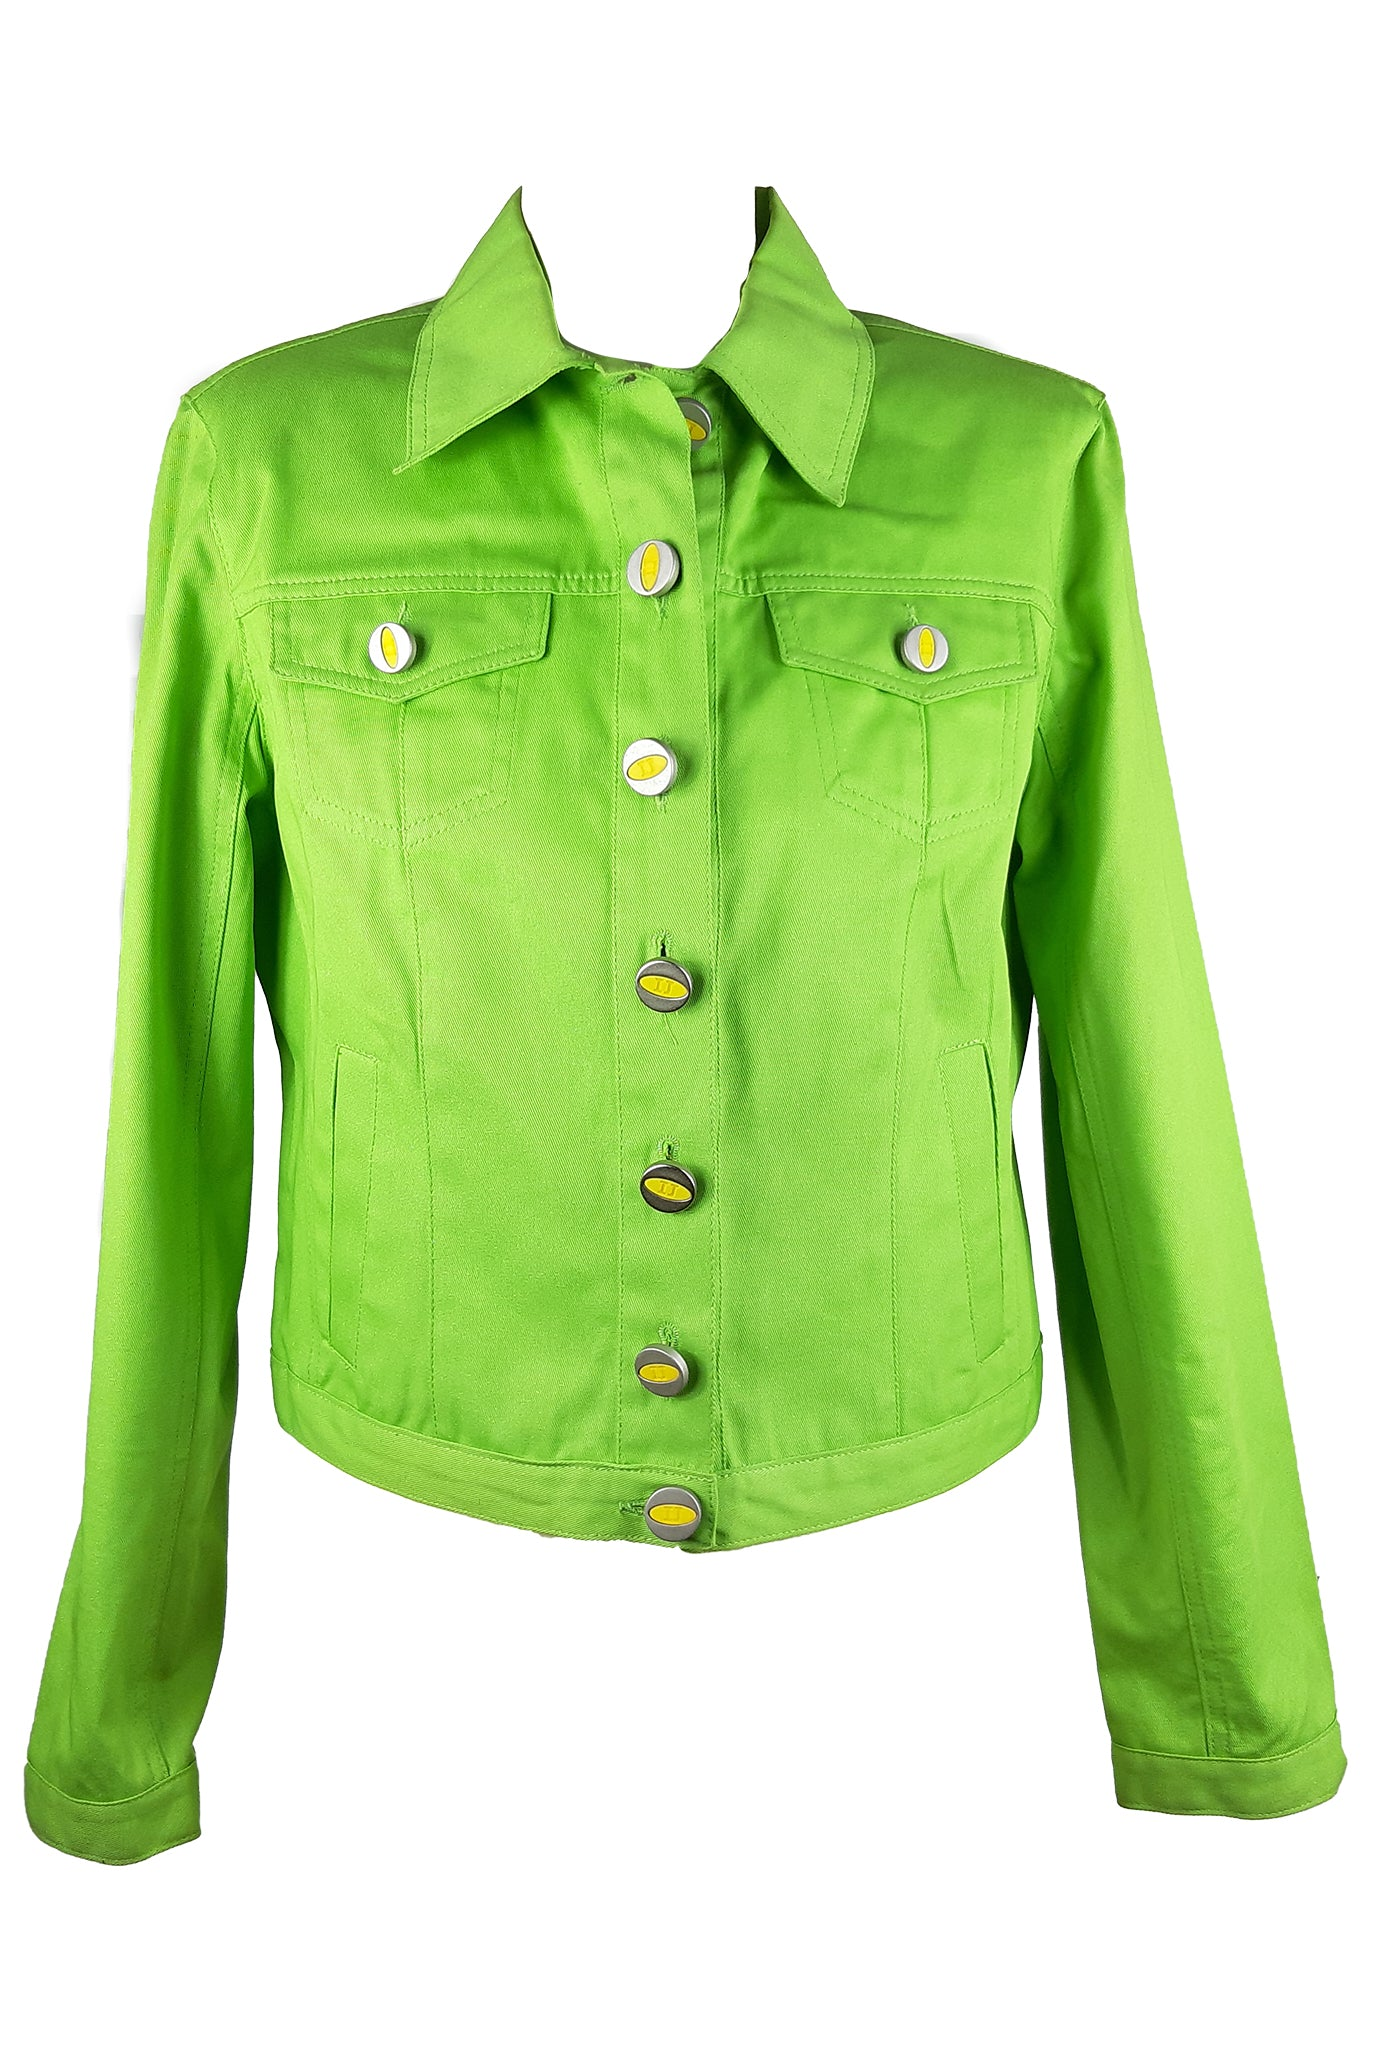 Iceberg Jeans in Vibrant Green with Yellow Buttons Size 42 (IT) 38 (EU)